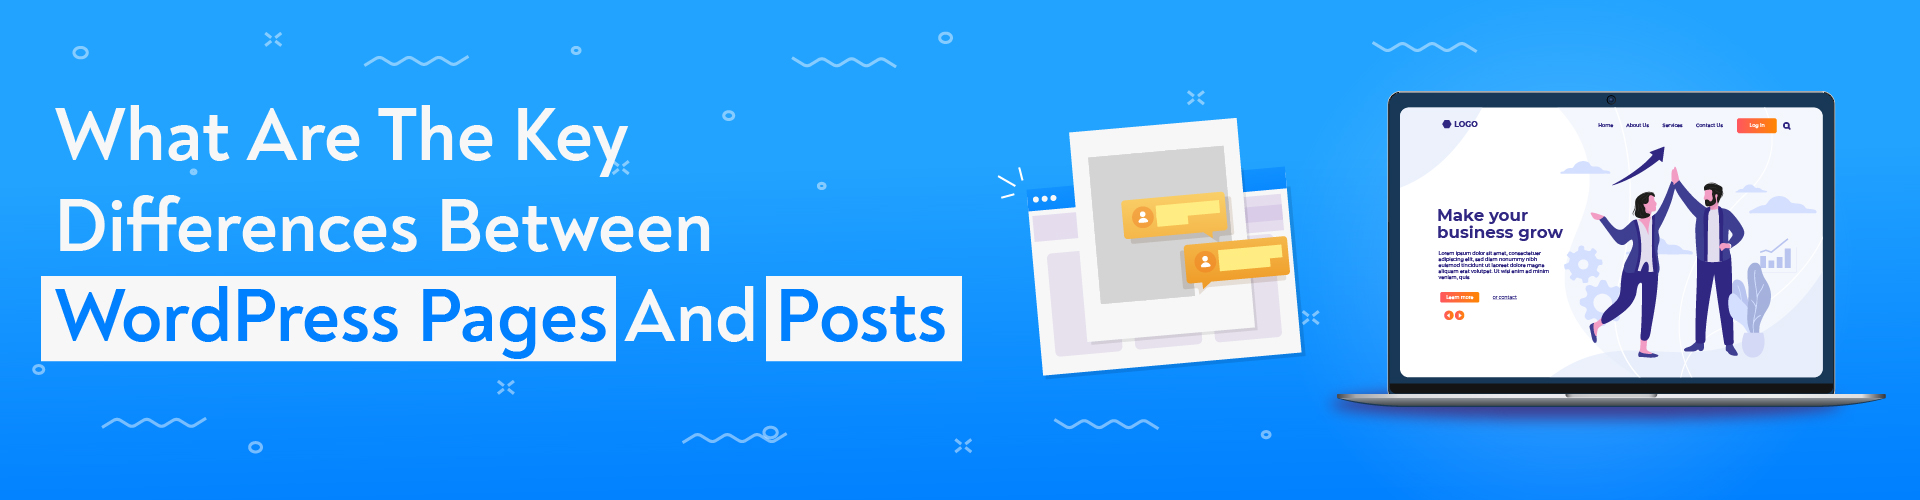 You are currently viewing What Are The Key Differences Between WordPress Pages And Posts?